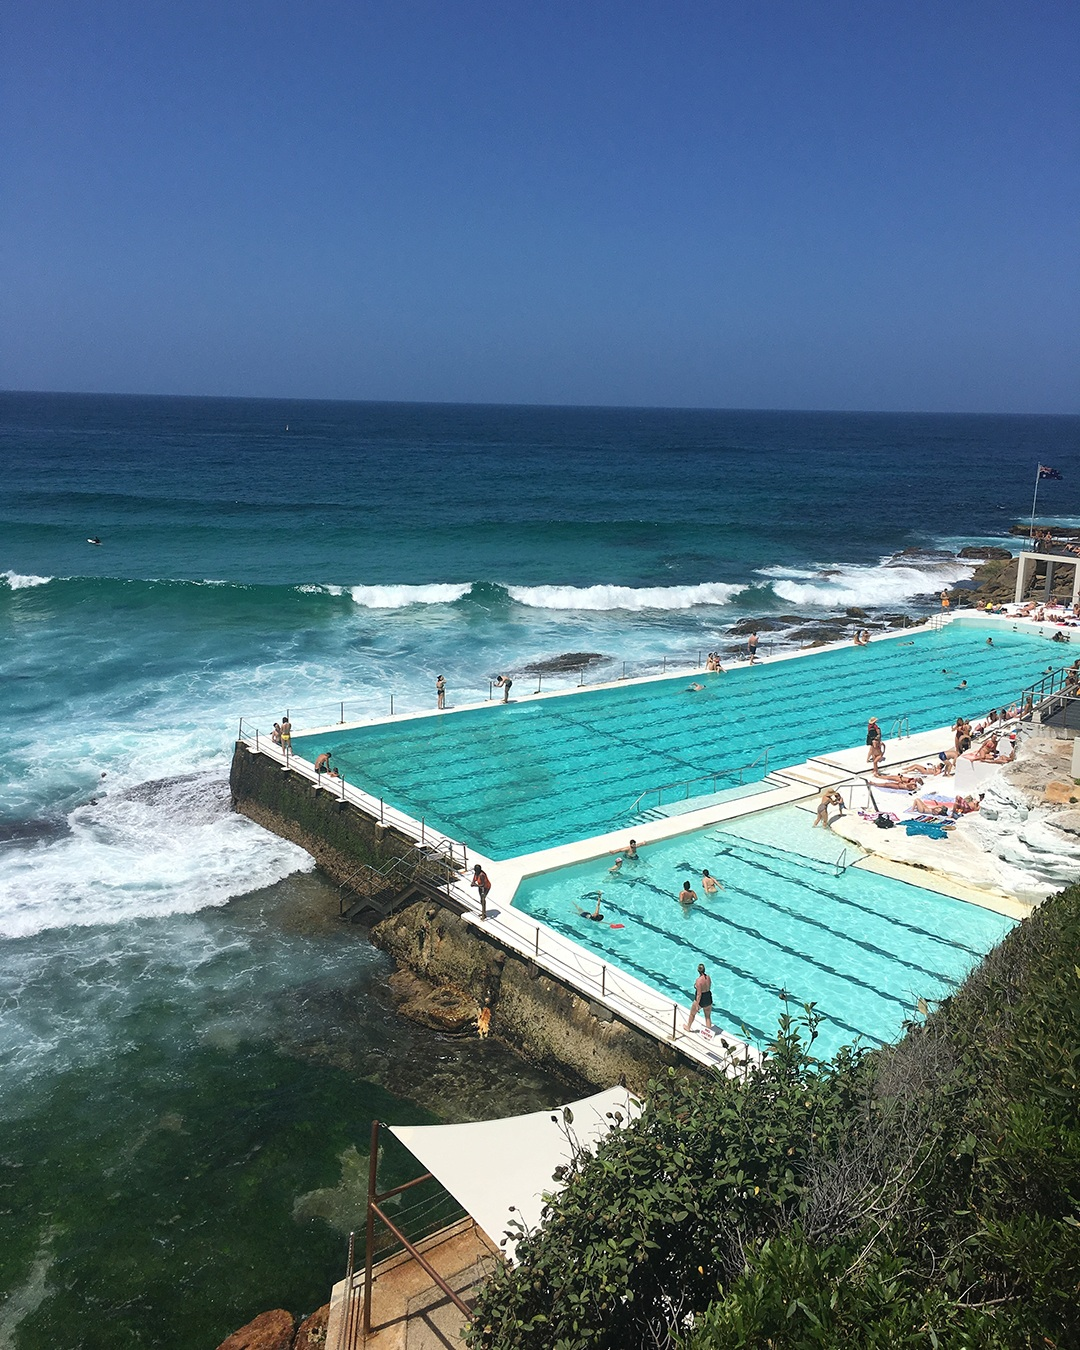 The Bondi Icebergs Pool